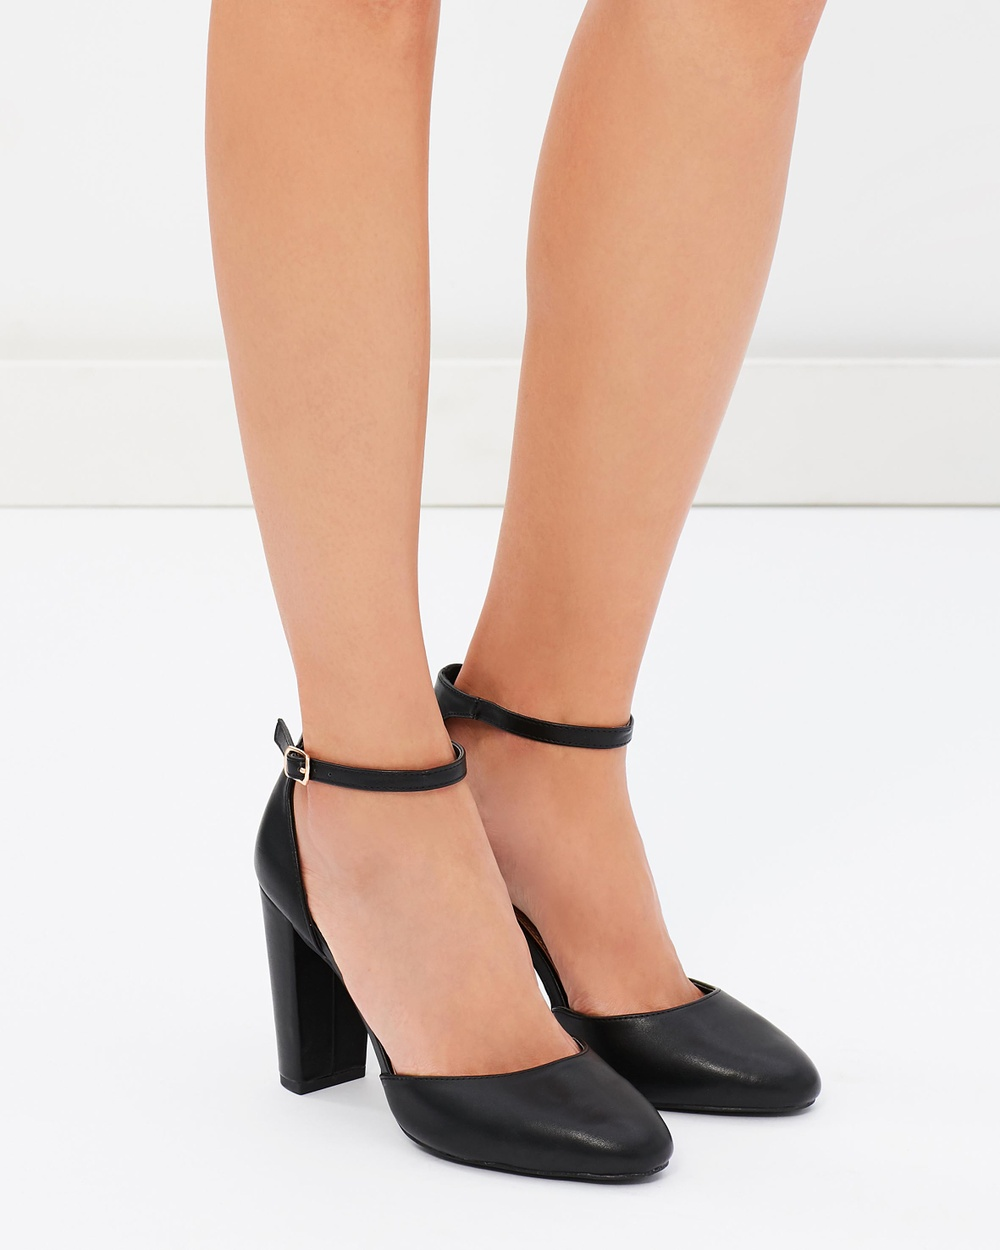 SPURR ICONIC EXCLUSIVE Olli Block Heel Pumps All Pumps Black ICONIC EXCLUSIVE Olli Block Heel Pumps